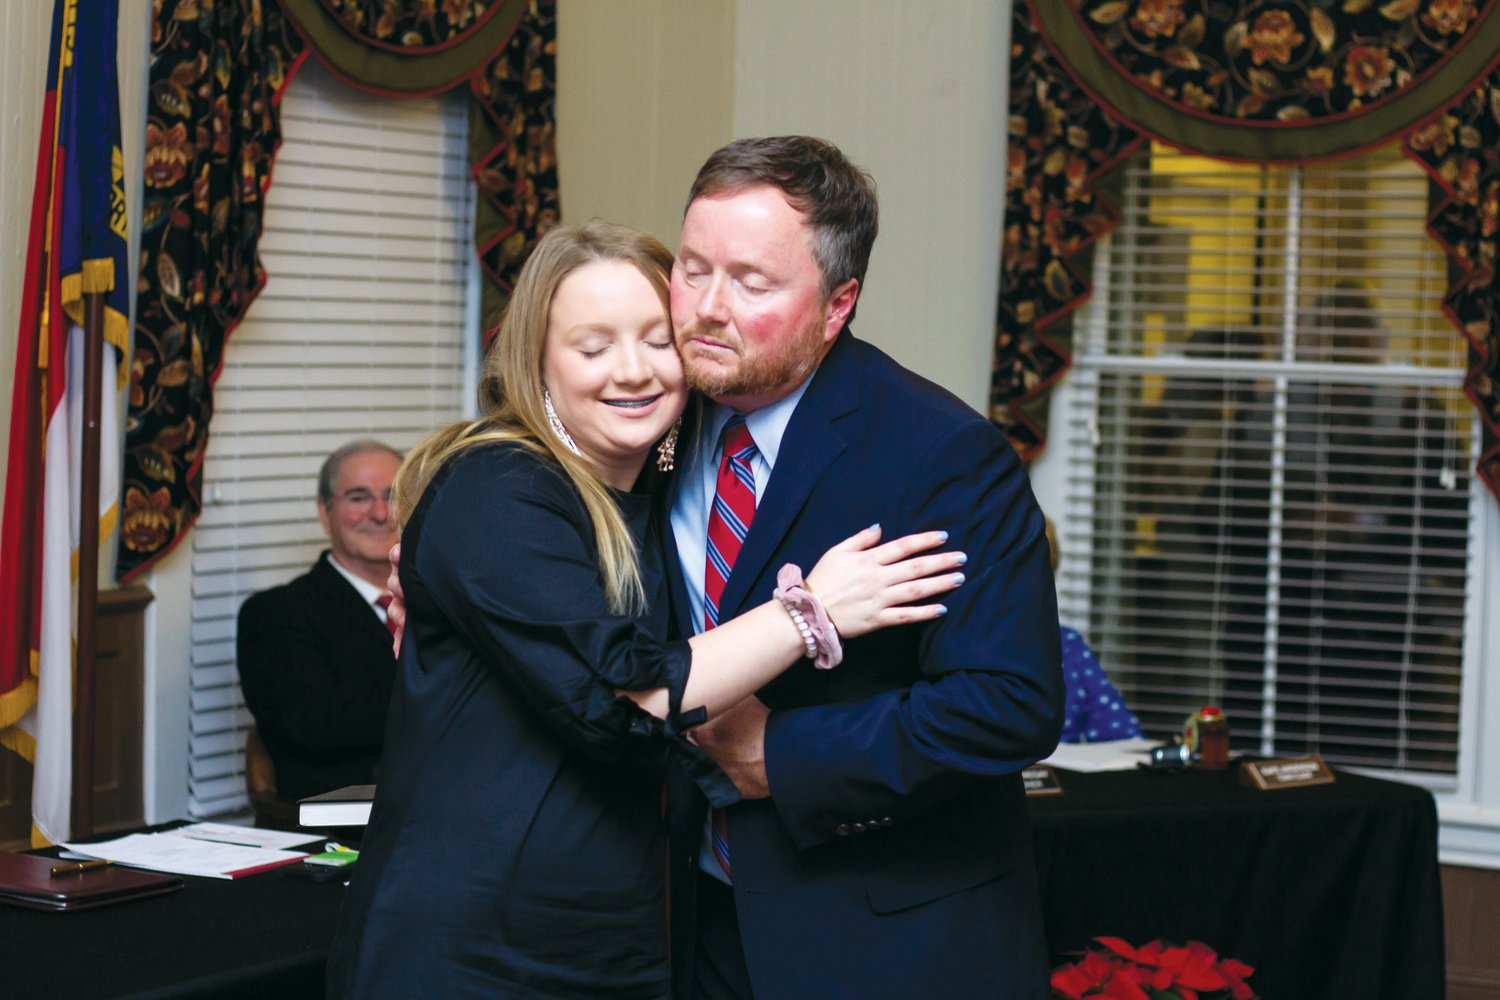 Kenny Talton hugs daughter, Mary Emma Talton, after taking the oath of office as Mount Olive's new mayor.